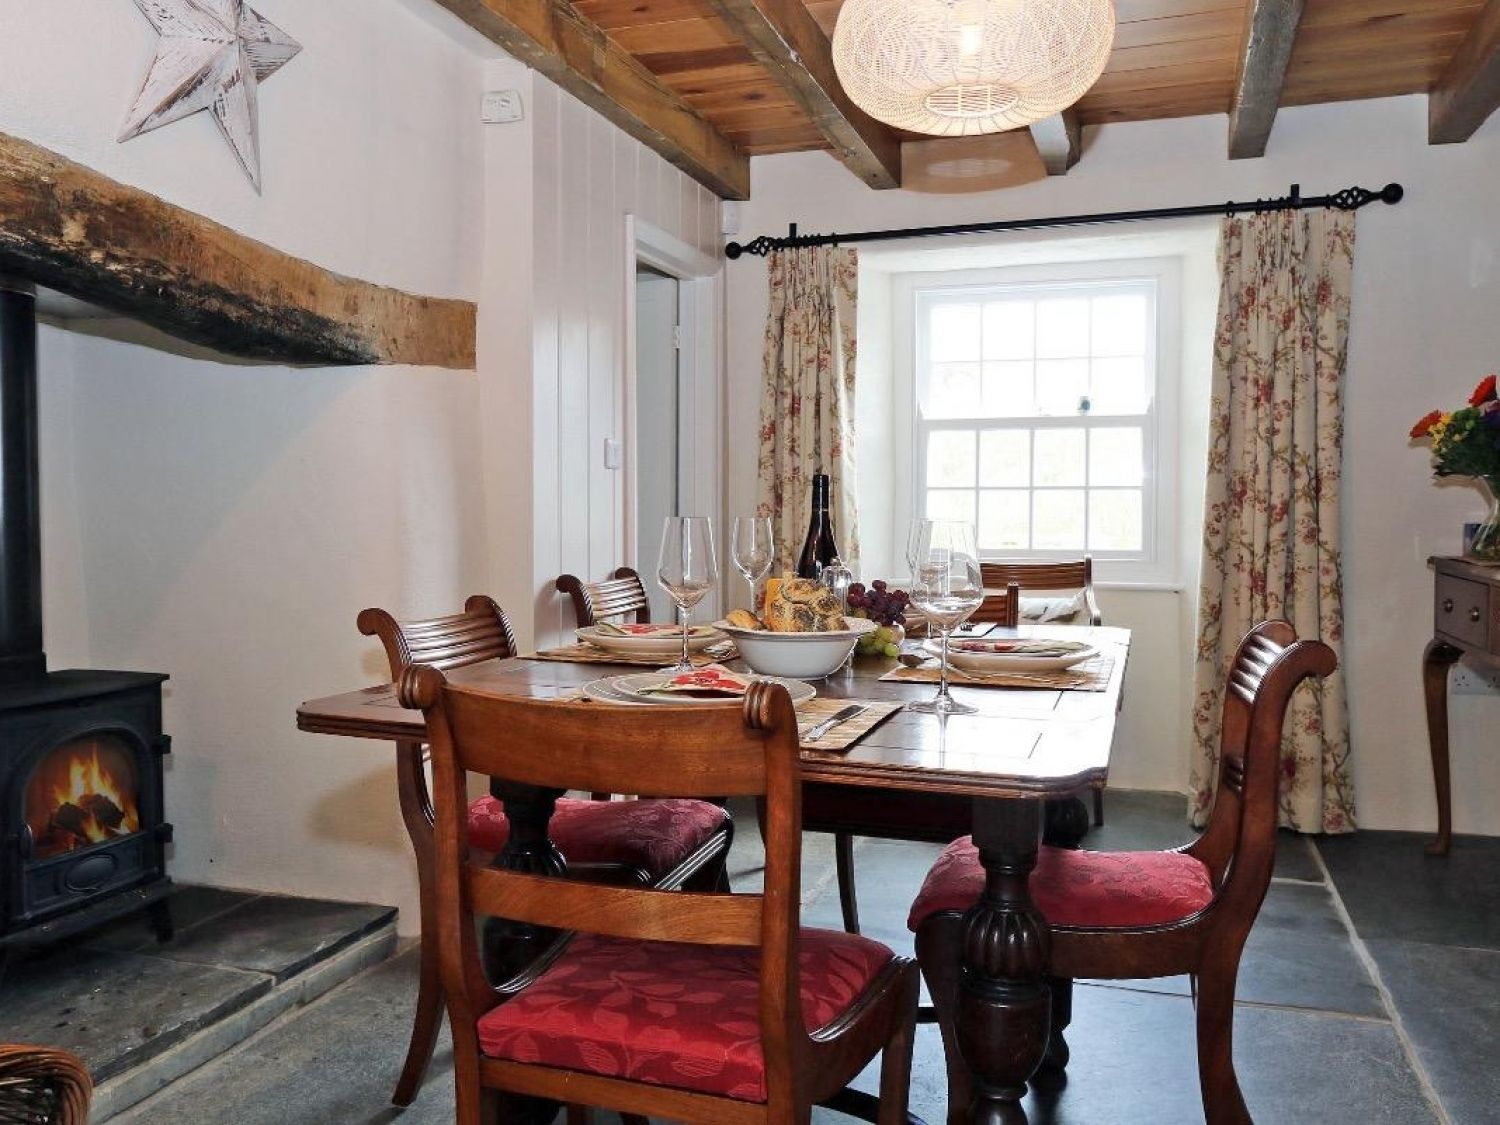 The Old Post Office in Mawgan Porth - sleeps 6 people